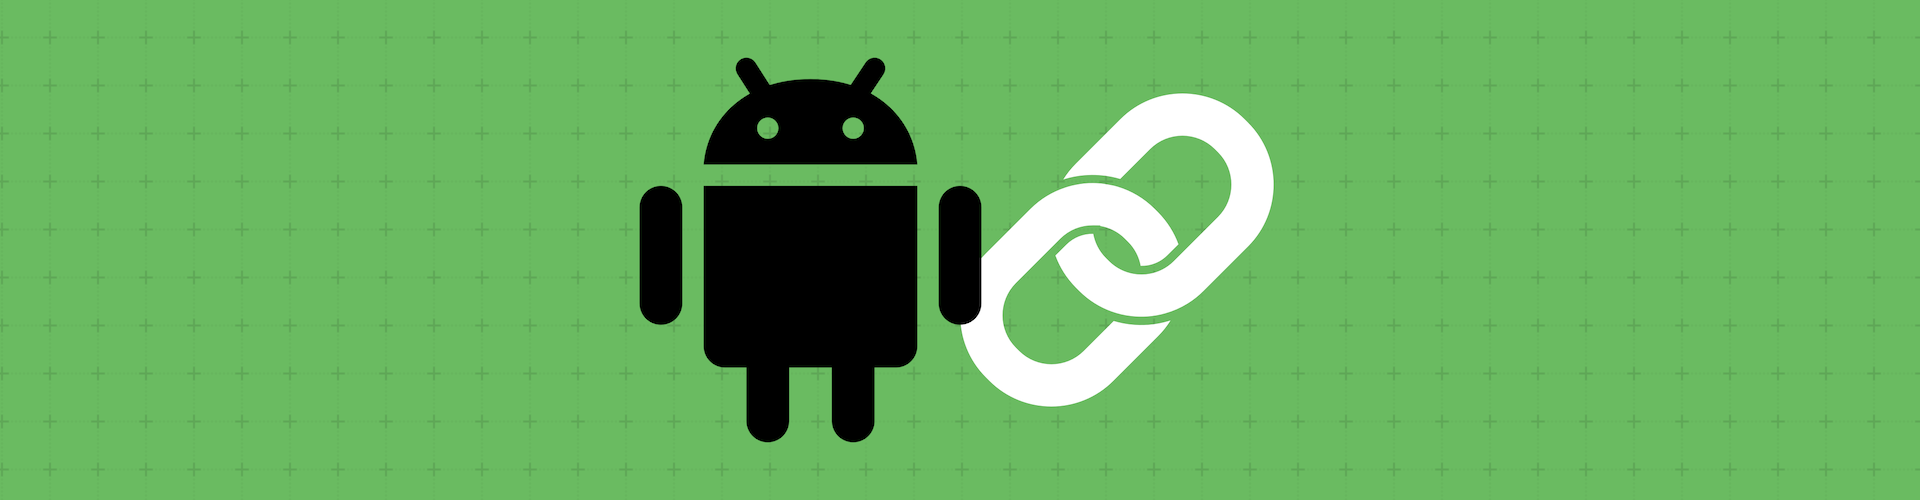 Building Android components with ease | Novatec